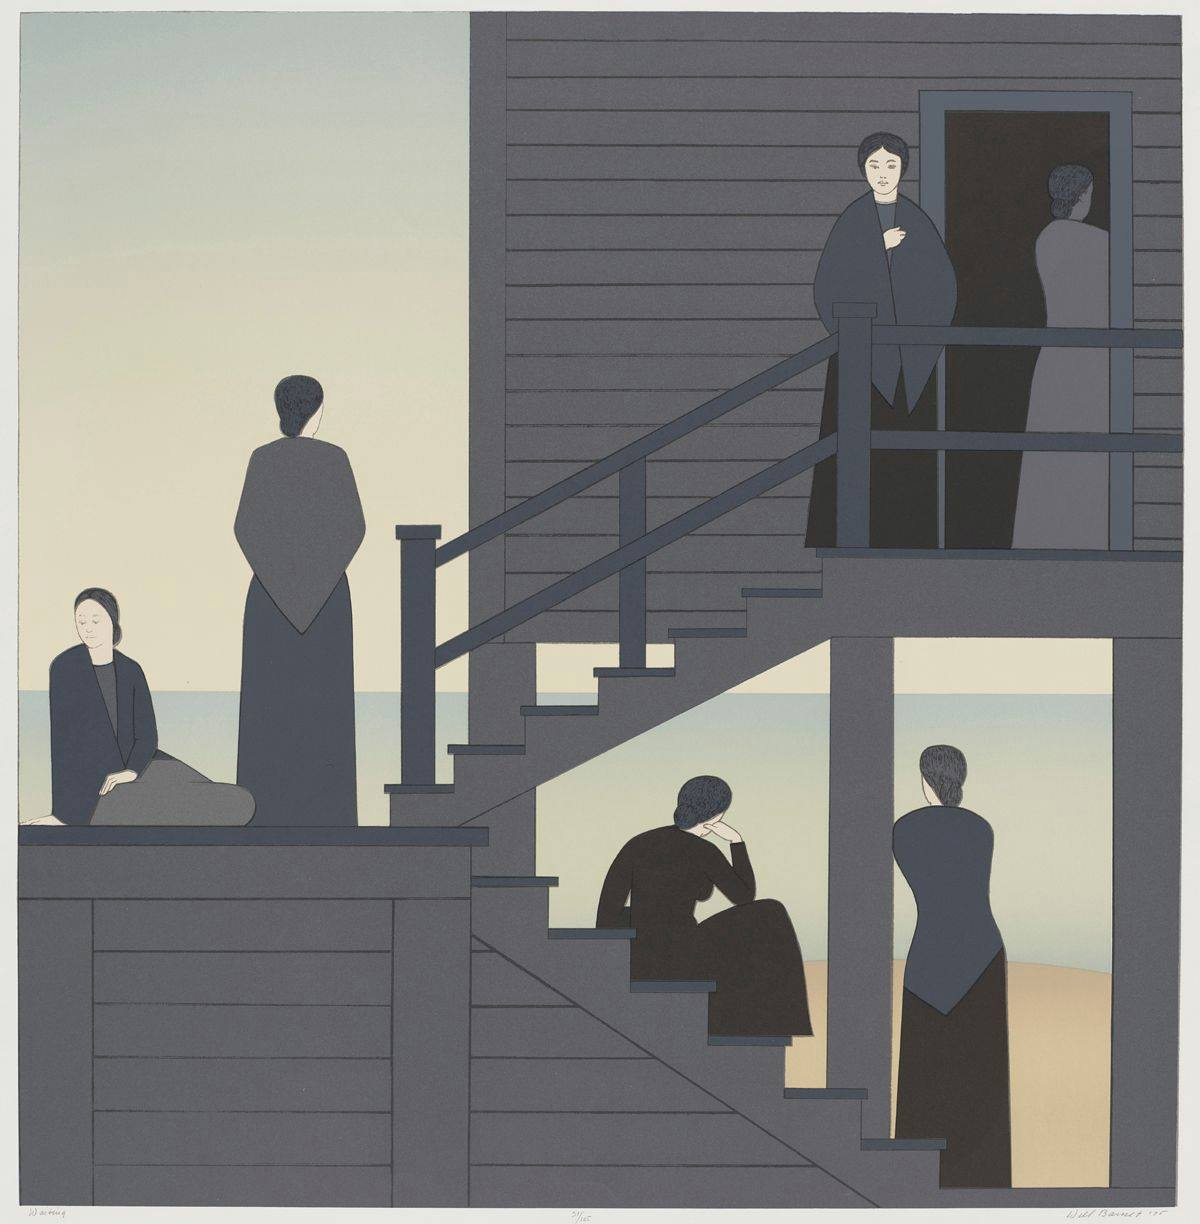 Waiting, from the Kent Bicentennial Portfolio: Spirit of Independence, Will Barnet, color lithograph and screenprint on paper, 33 x 33 7/8 inches, lithograph and screenprint on paper. A square print depicting six women grouped in twos sitting and standing on a set of exterior staircases. The women sit or stand on the upper, middle and lower portions of a switch back staircase attached on the upper level to a building. At upper right are two women positioned just inside and just outside a doorway to a gray clapboard building. One woman stands at a railing and faces the viewer while the other has her back turned and stands inside the doorway in shadow. A staircase leads down to the left. At middle left is a woman standing with her back turned to the viewer next to a woman sitting on the staircase landing and looking left. At bottom left, a woman sits on the second staircase that leads down. She rests her head on her hand while another woman stands below her leaning against a building post, both looking out to the pale blue sea in the background. The women all wear long black or gray dresses and most wear shawls. The structure and the women are rendered in flat gray tones with skin color being white with minimal line drawing facial features.